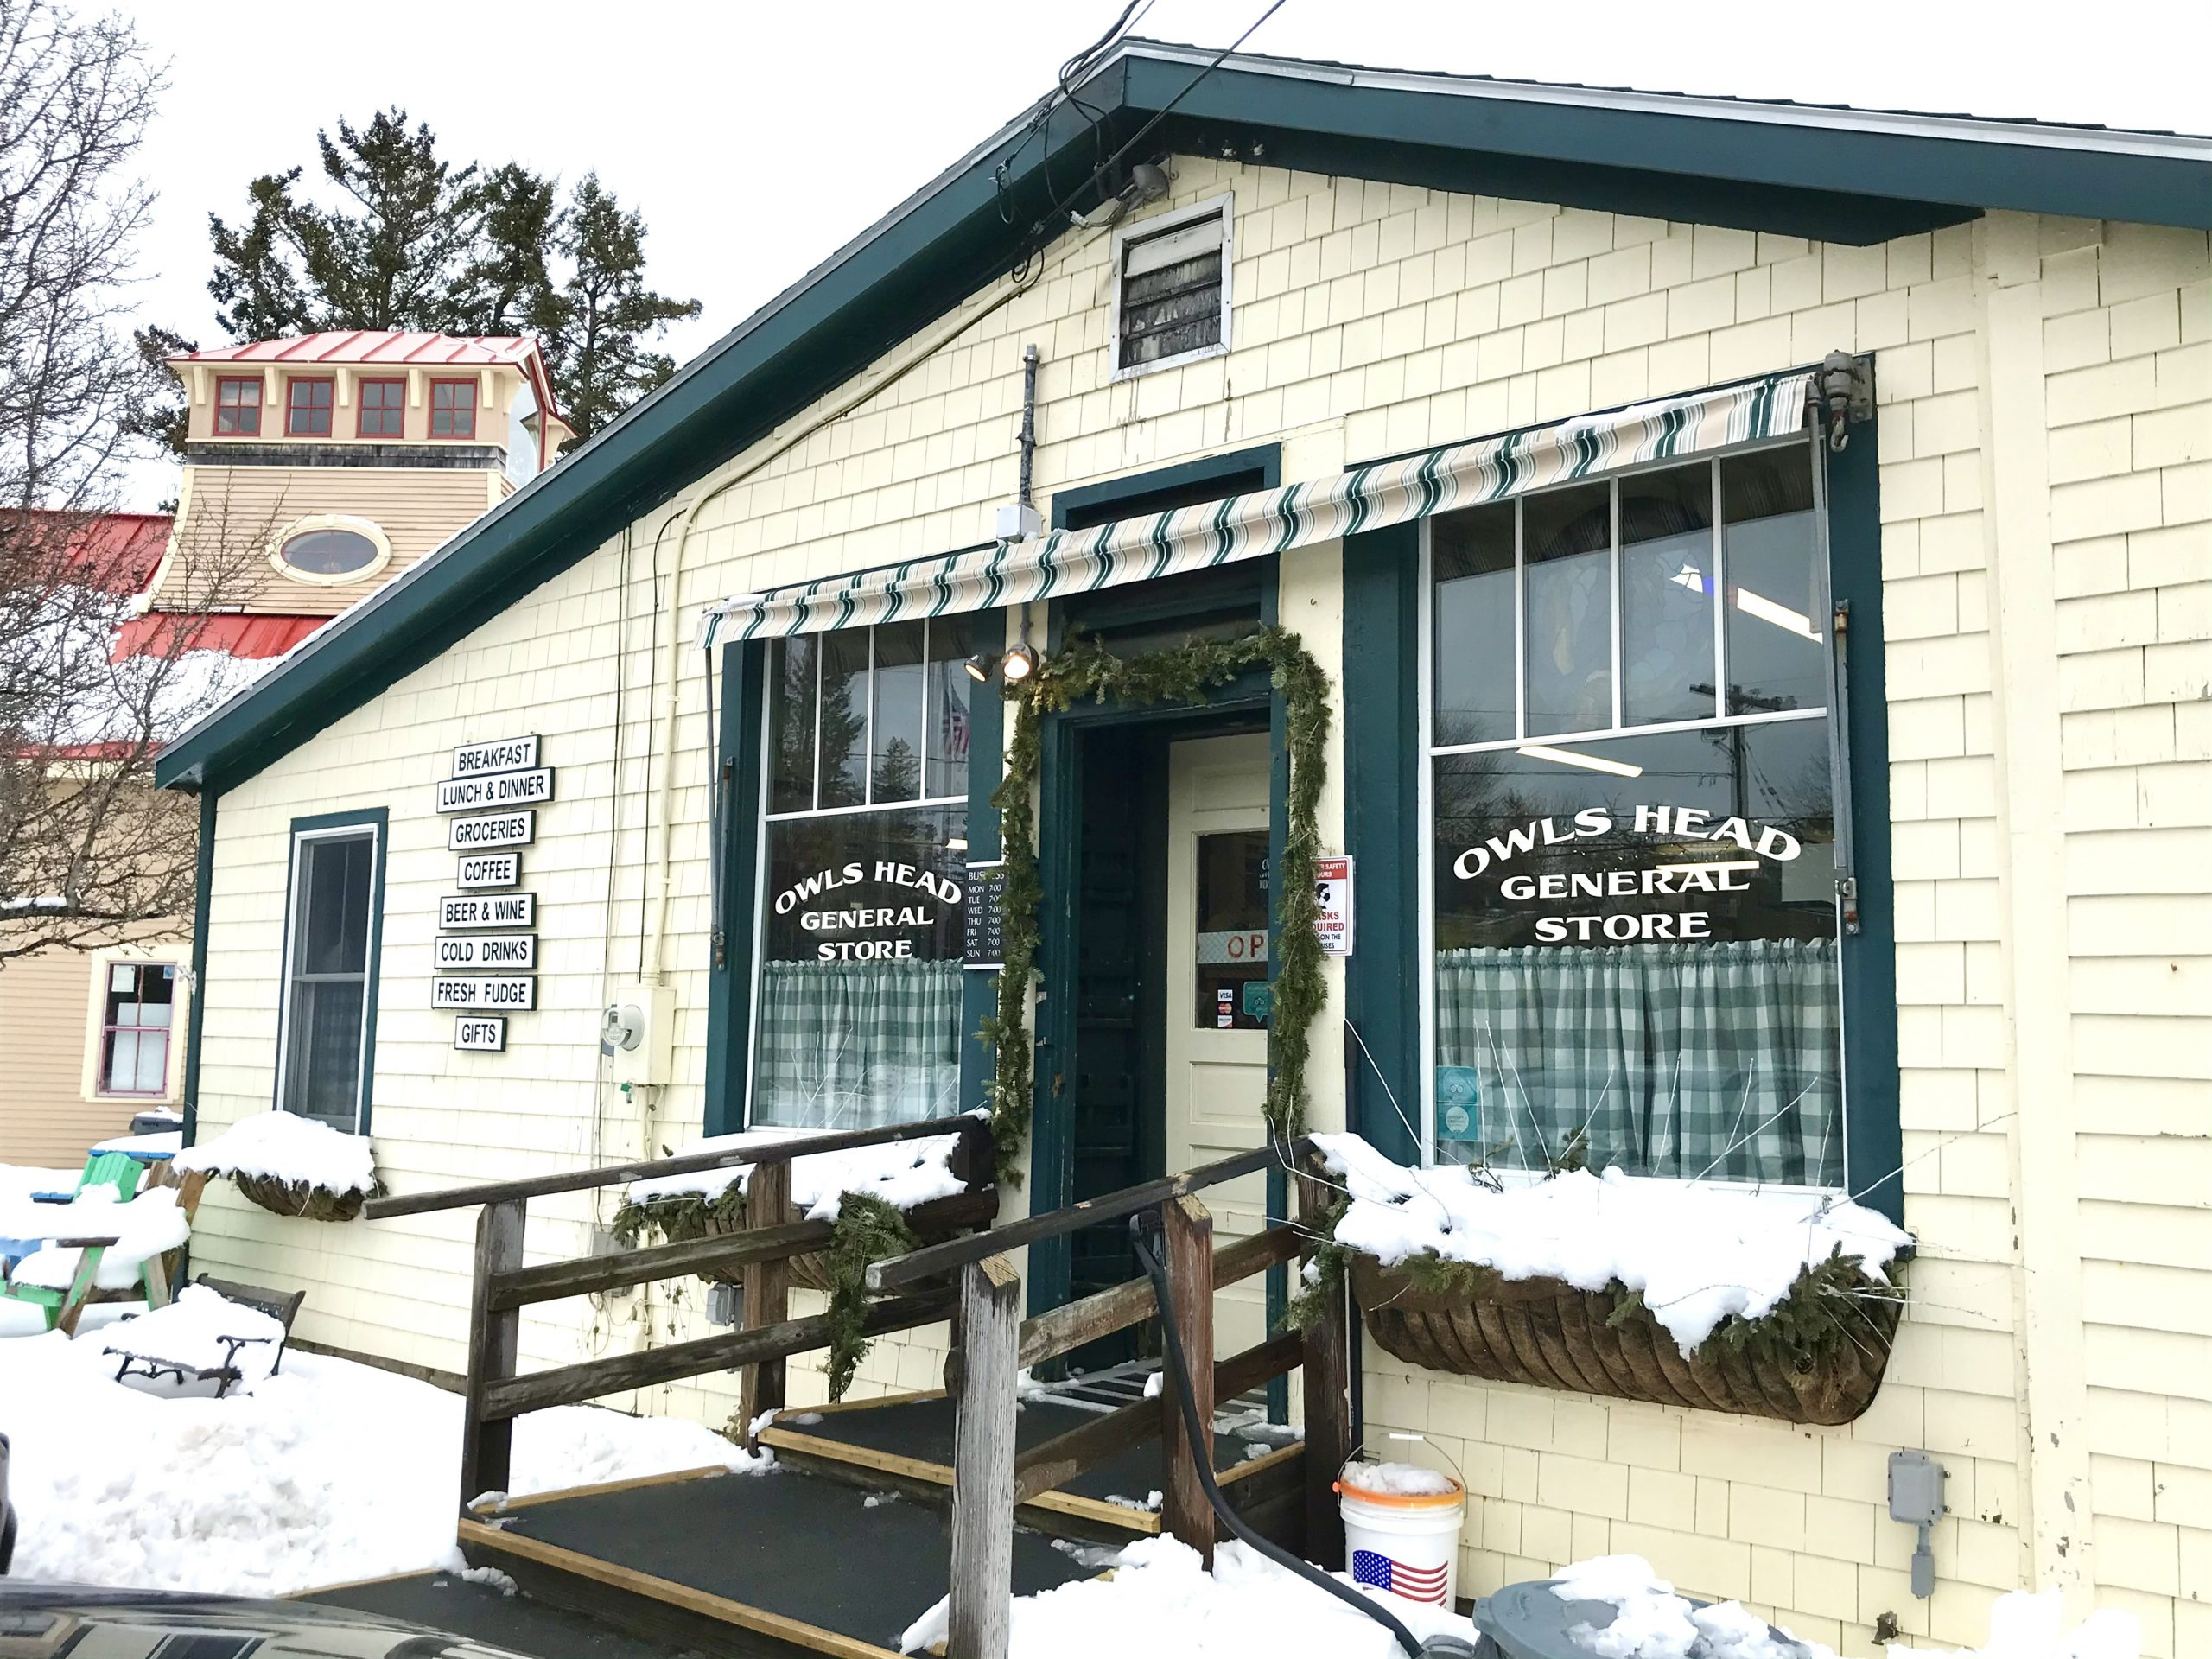 Owls Head General Store – Owls Head, Maine